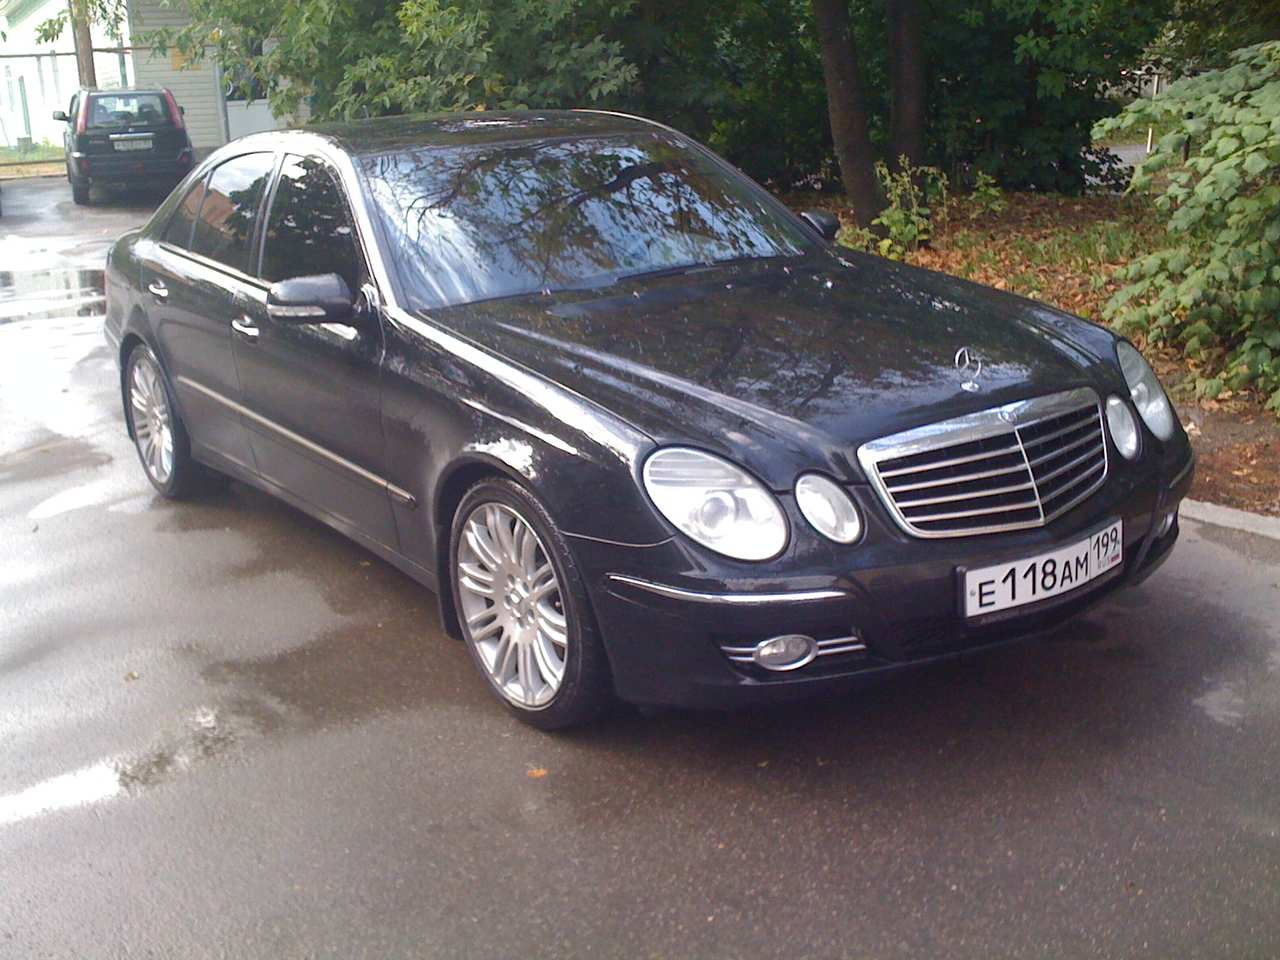 2007 mercedes benz e class pics 3 0 gasoline fr or rr. Black Bedroom Furniture Sets. Home Design Ideas